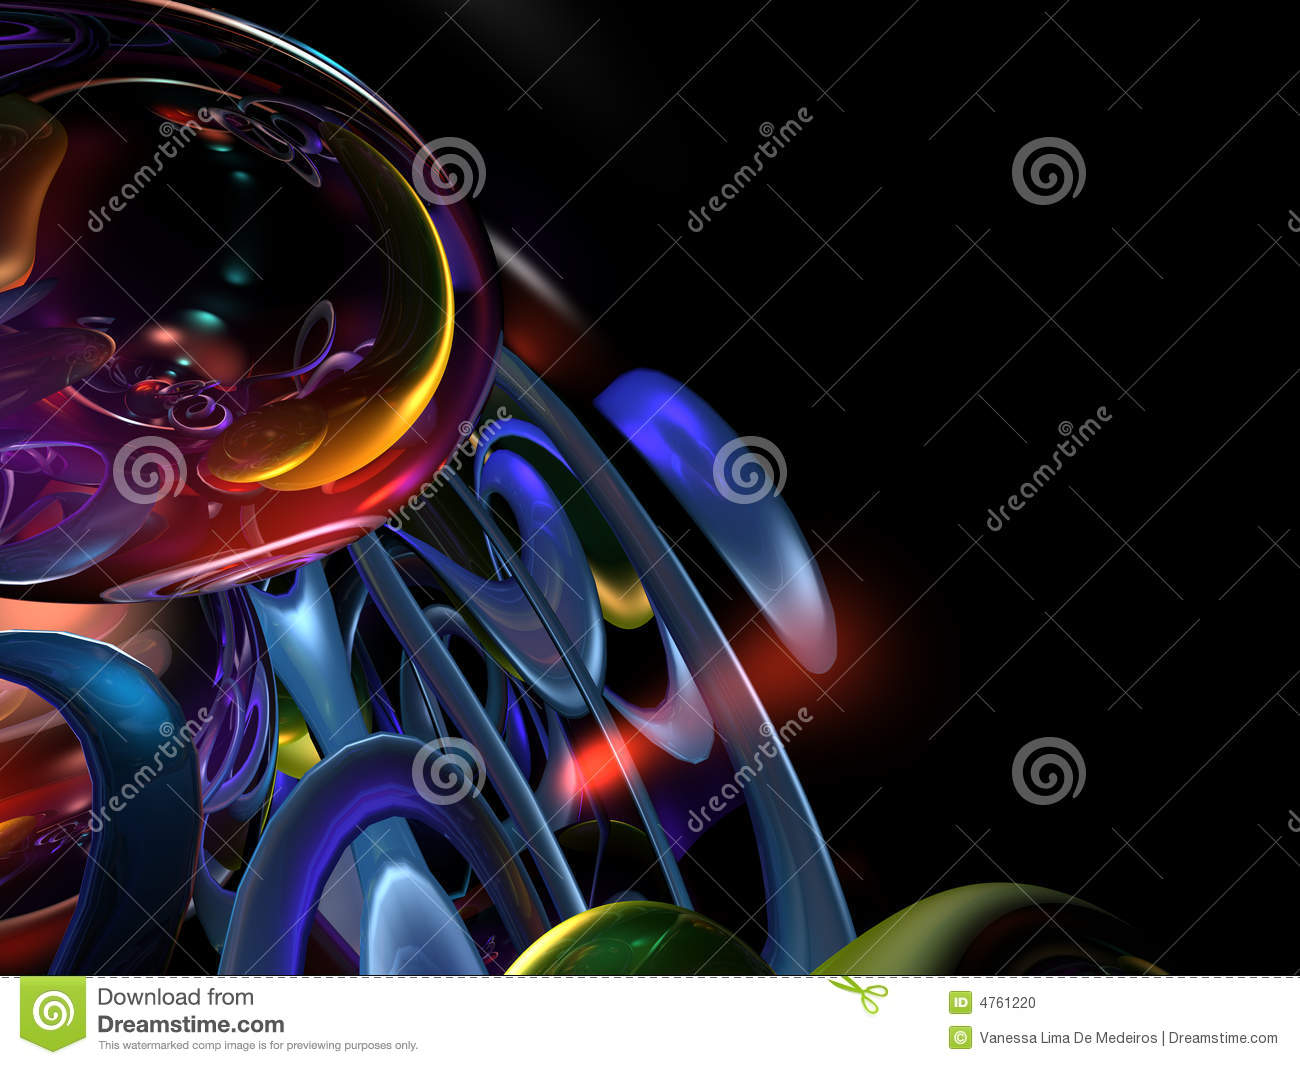 Pics photos 3d colorful abstract background design - 3d Colorful Abstract Render Black Background Stock Photo